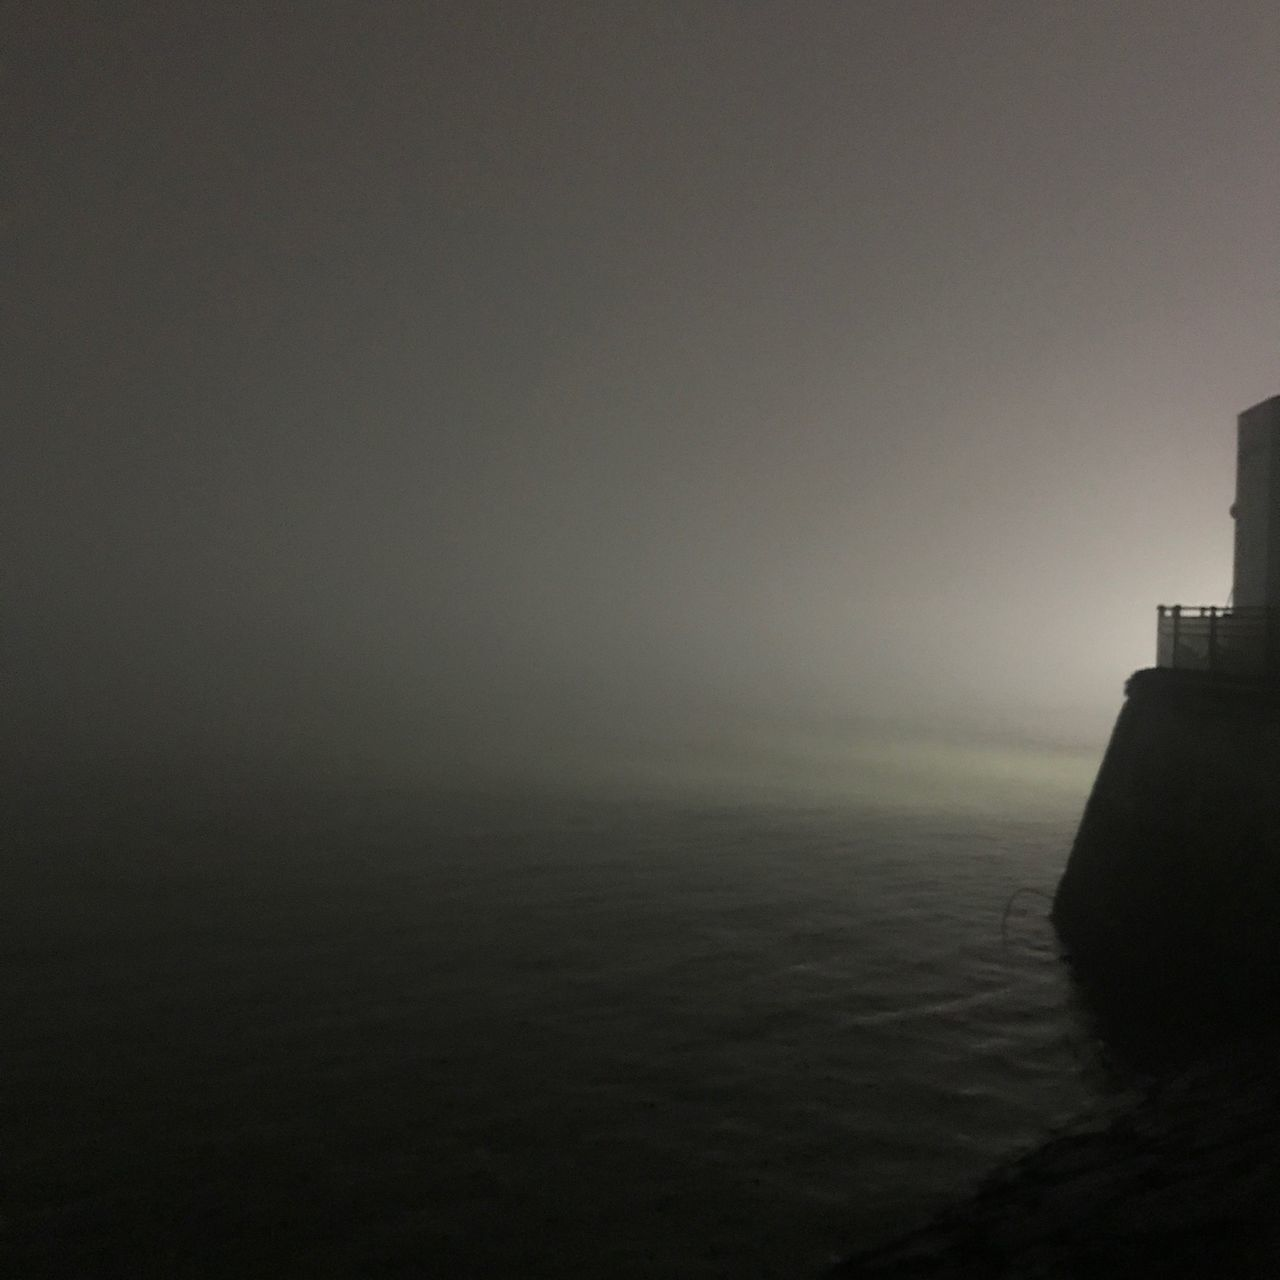 copy space, sky, fog, sea, building exterior, built structure, water, no people, architecture, tower, nature, beauty in nature, scenics - nature, tranquility, outdoors, tranquil scene, silhouette, guidance, lighthouse